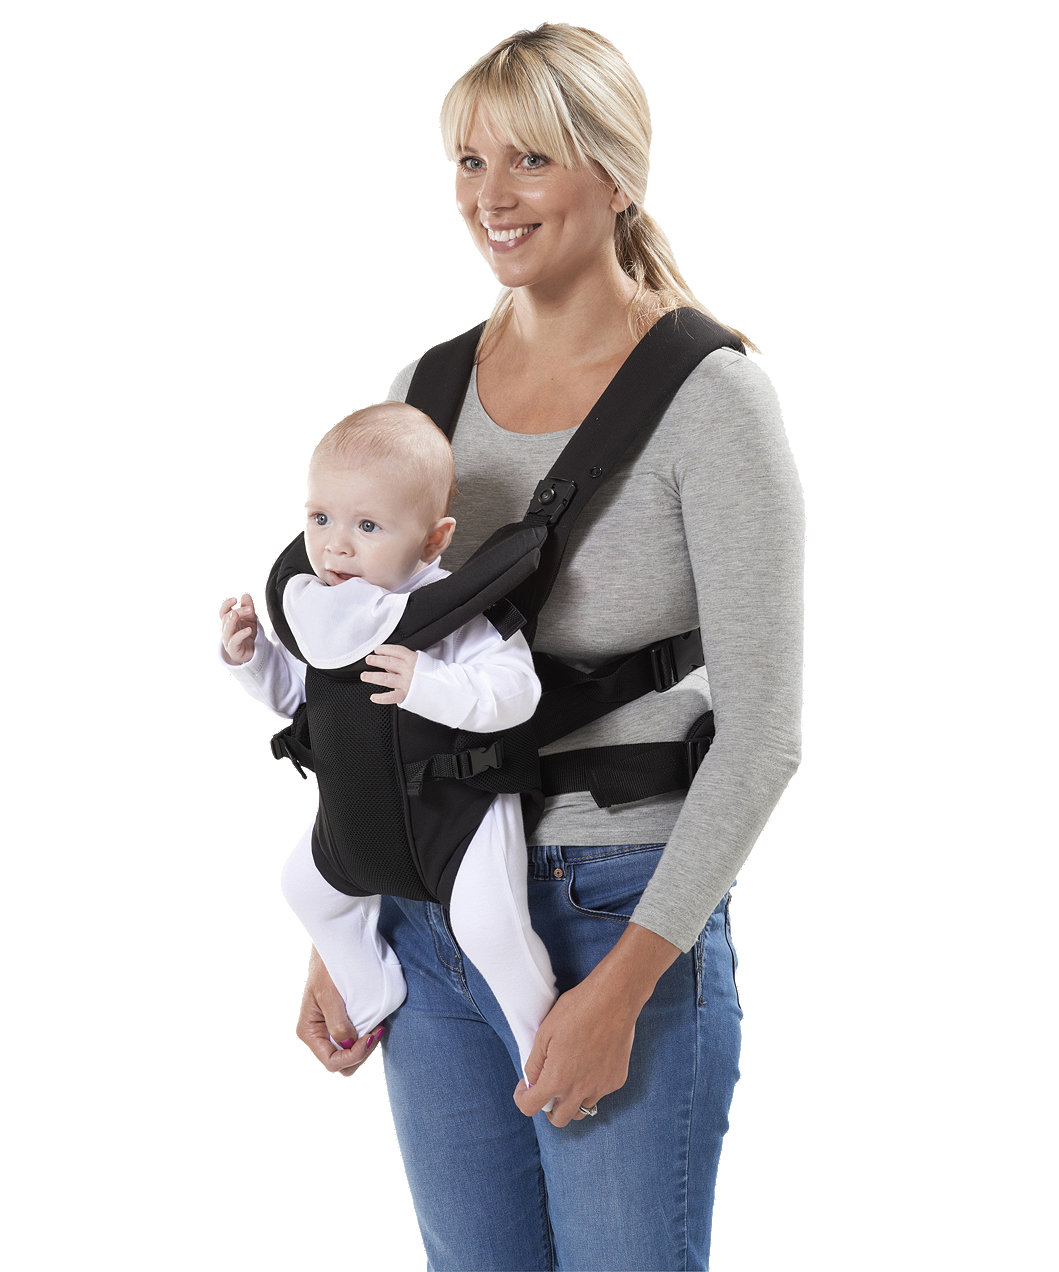 ed149a133d7 Mothercare Three Position Baby Carrier - Black